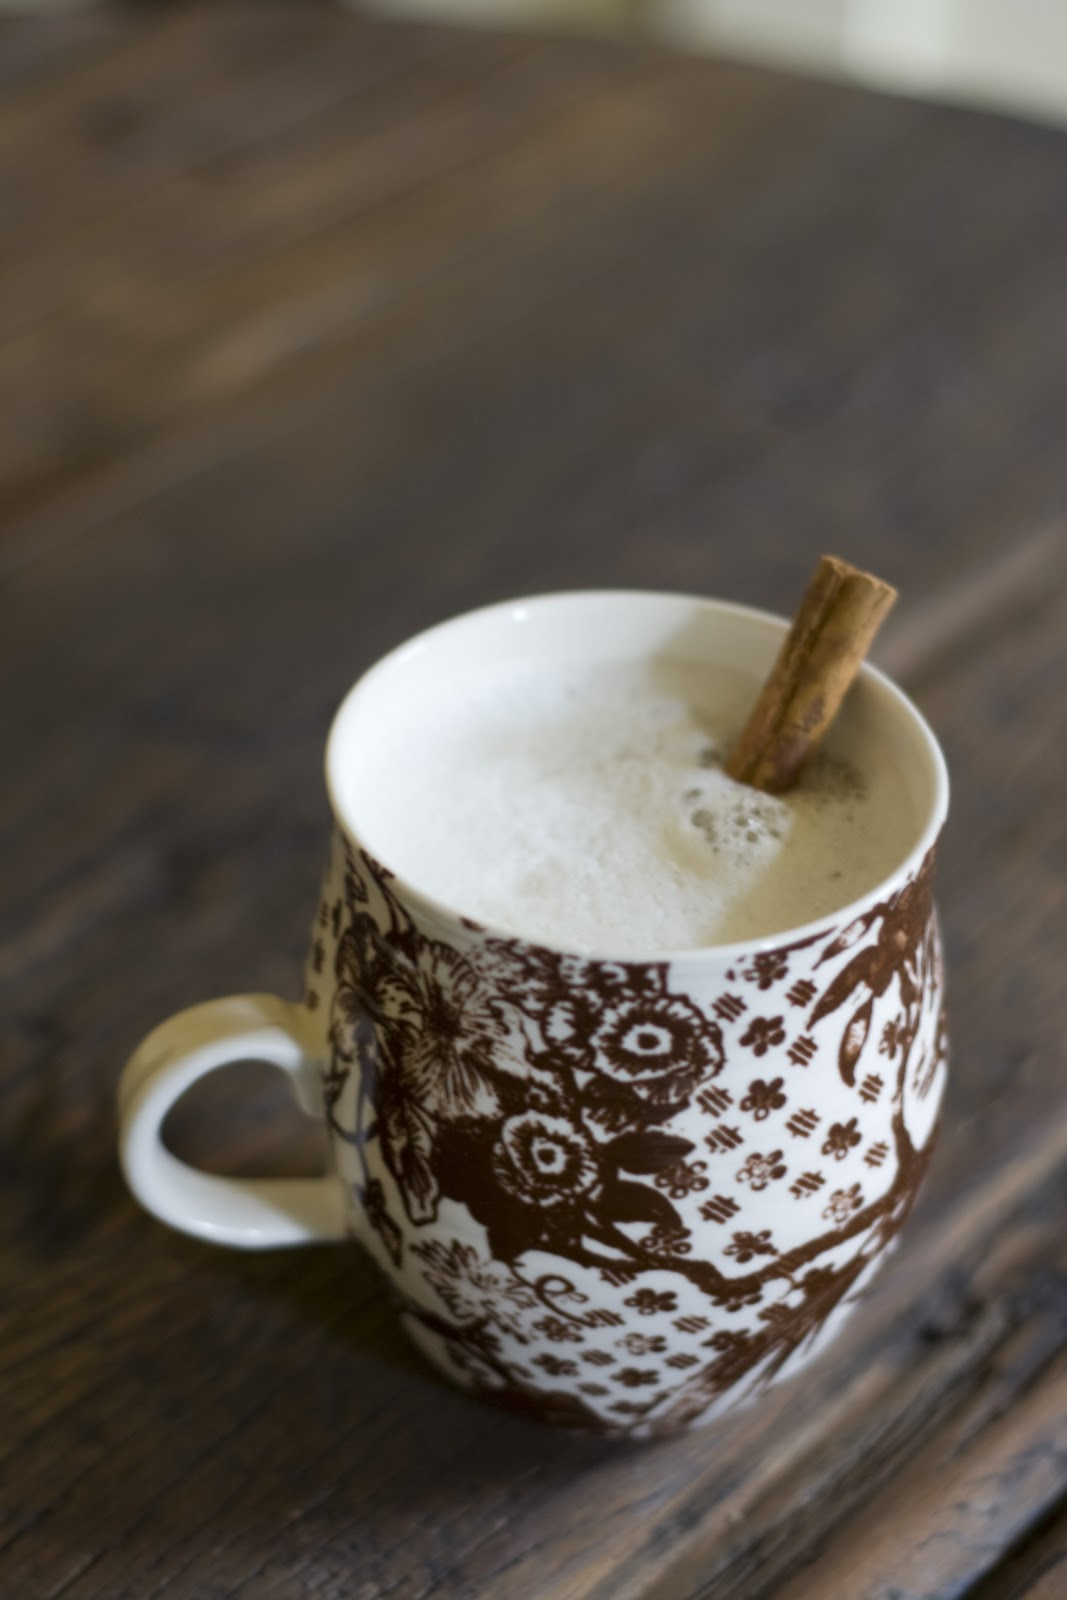 DIY Home Sweet Home: 14 Drink Recipes to Keep You Warm This Winter